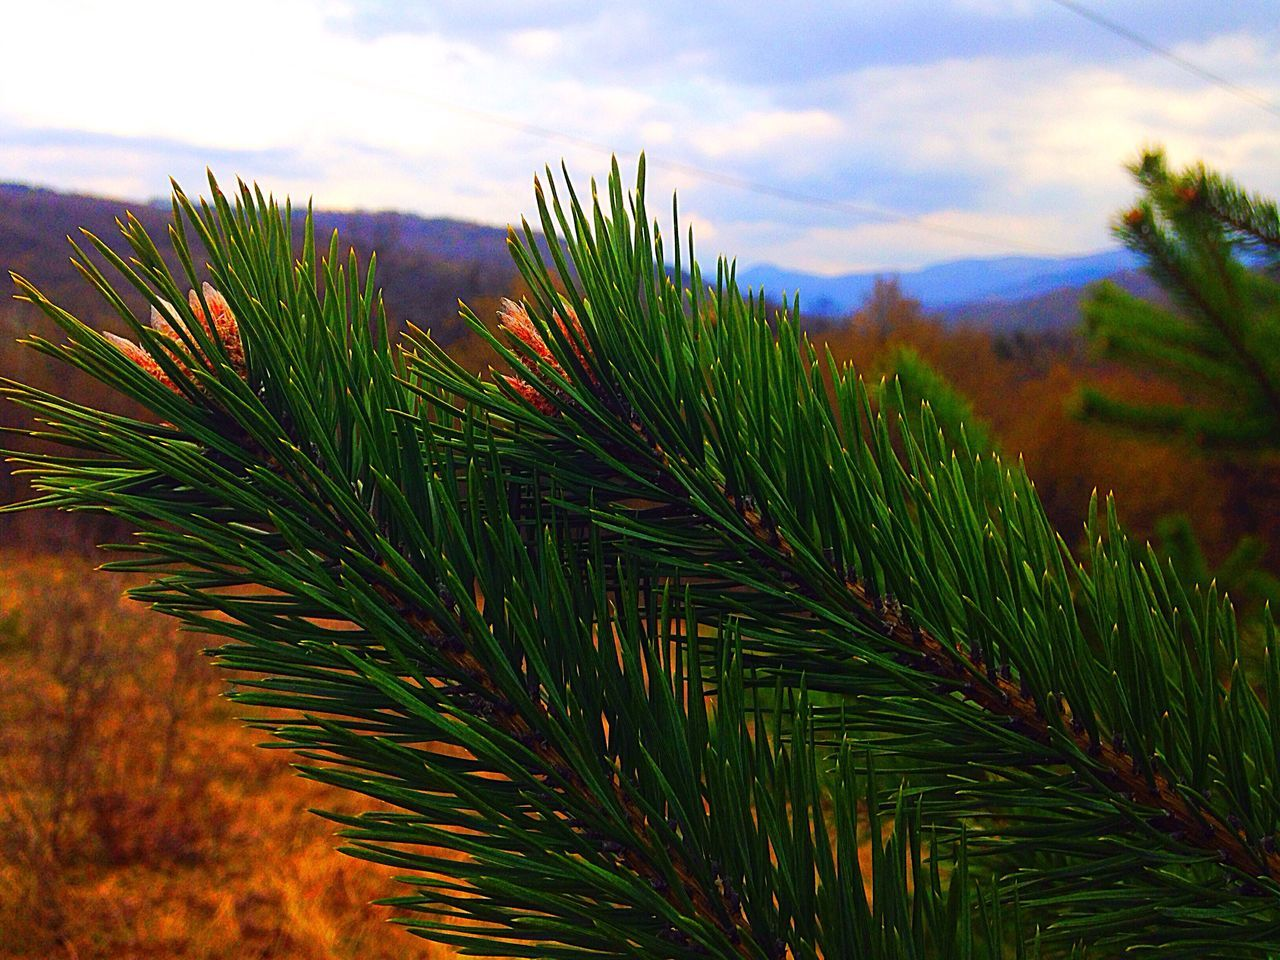 Spring❤️🌷 Pine Pineneedles Needles Nature Trees Mountain Mountain View Nature Makes Me Smile Smile MyPhotography IPhone5 Sun Spring Hiking Nature Lover Woods Green 28/100happydays